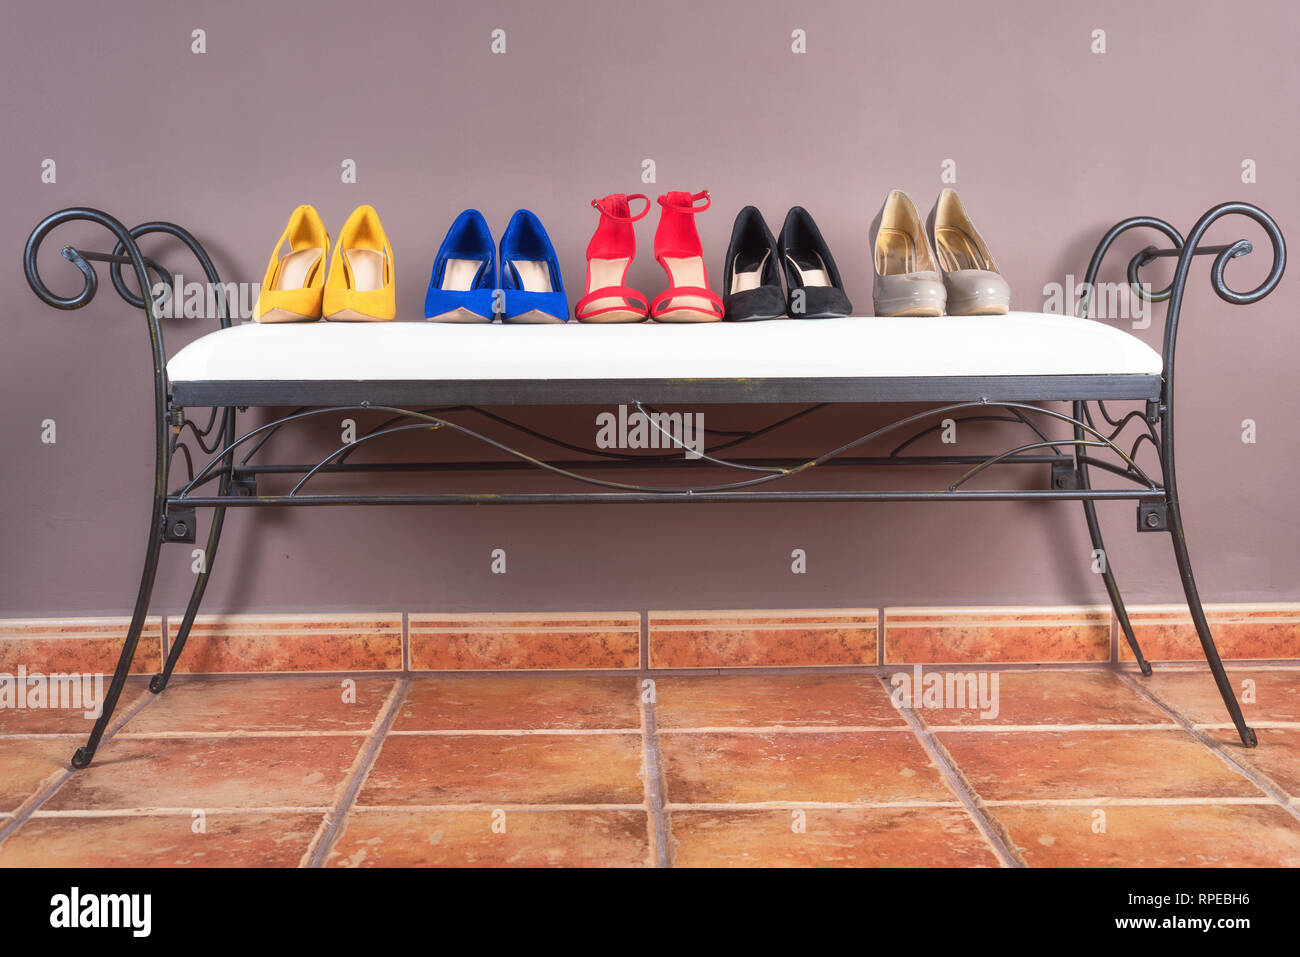 Collection of woman high heel shoes, on white sofa. - Stock Image